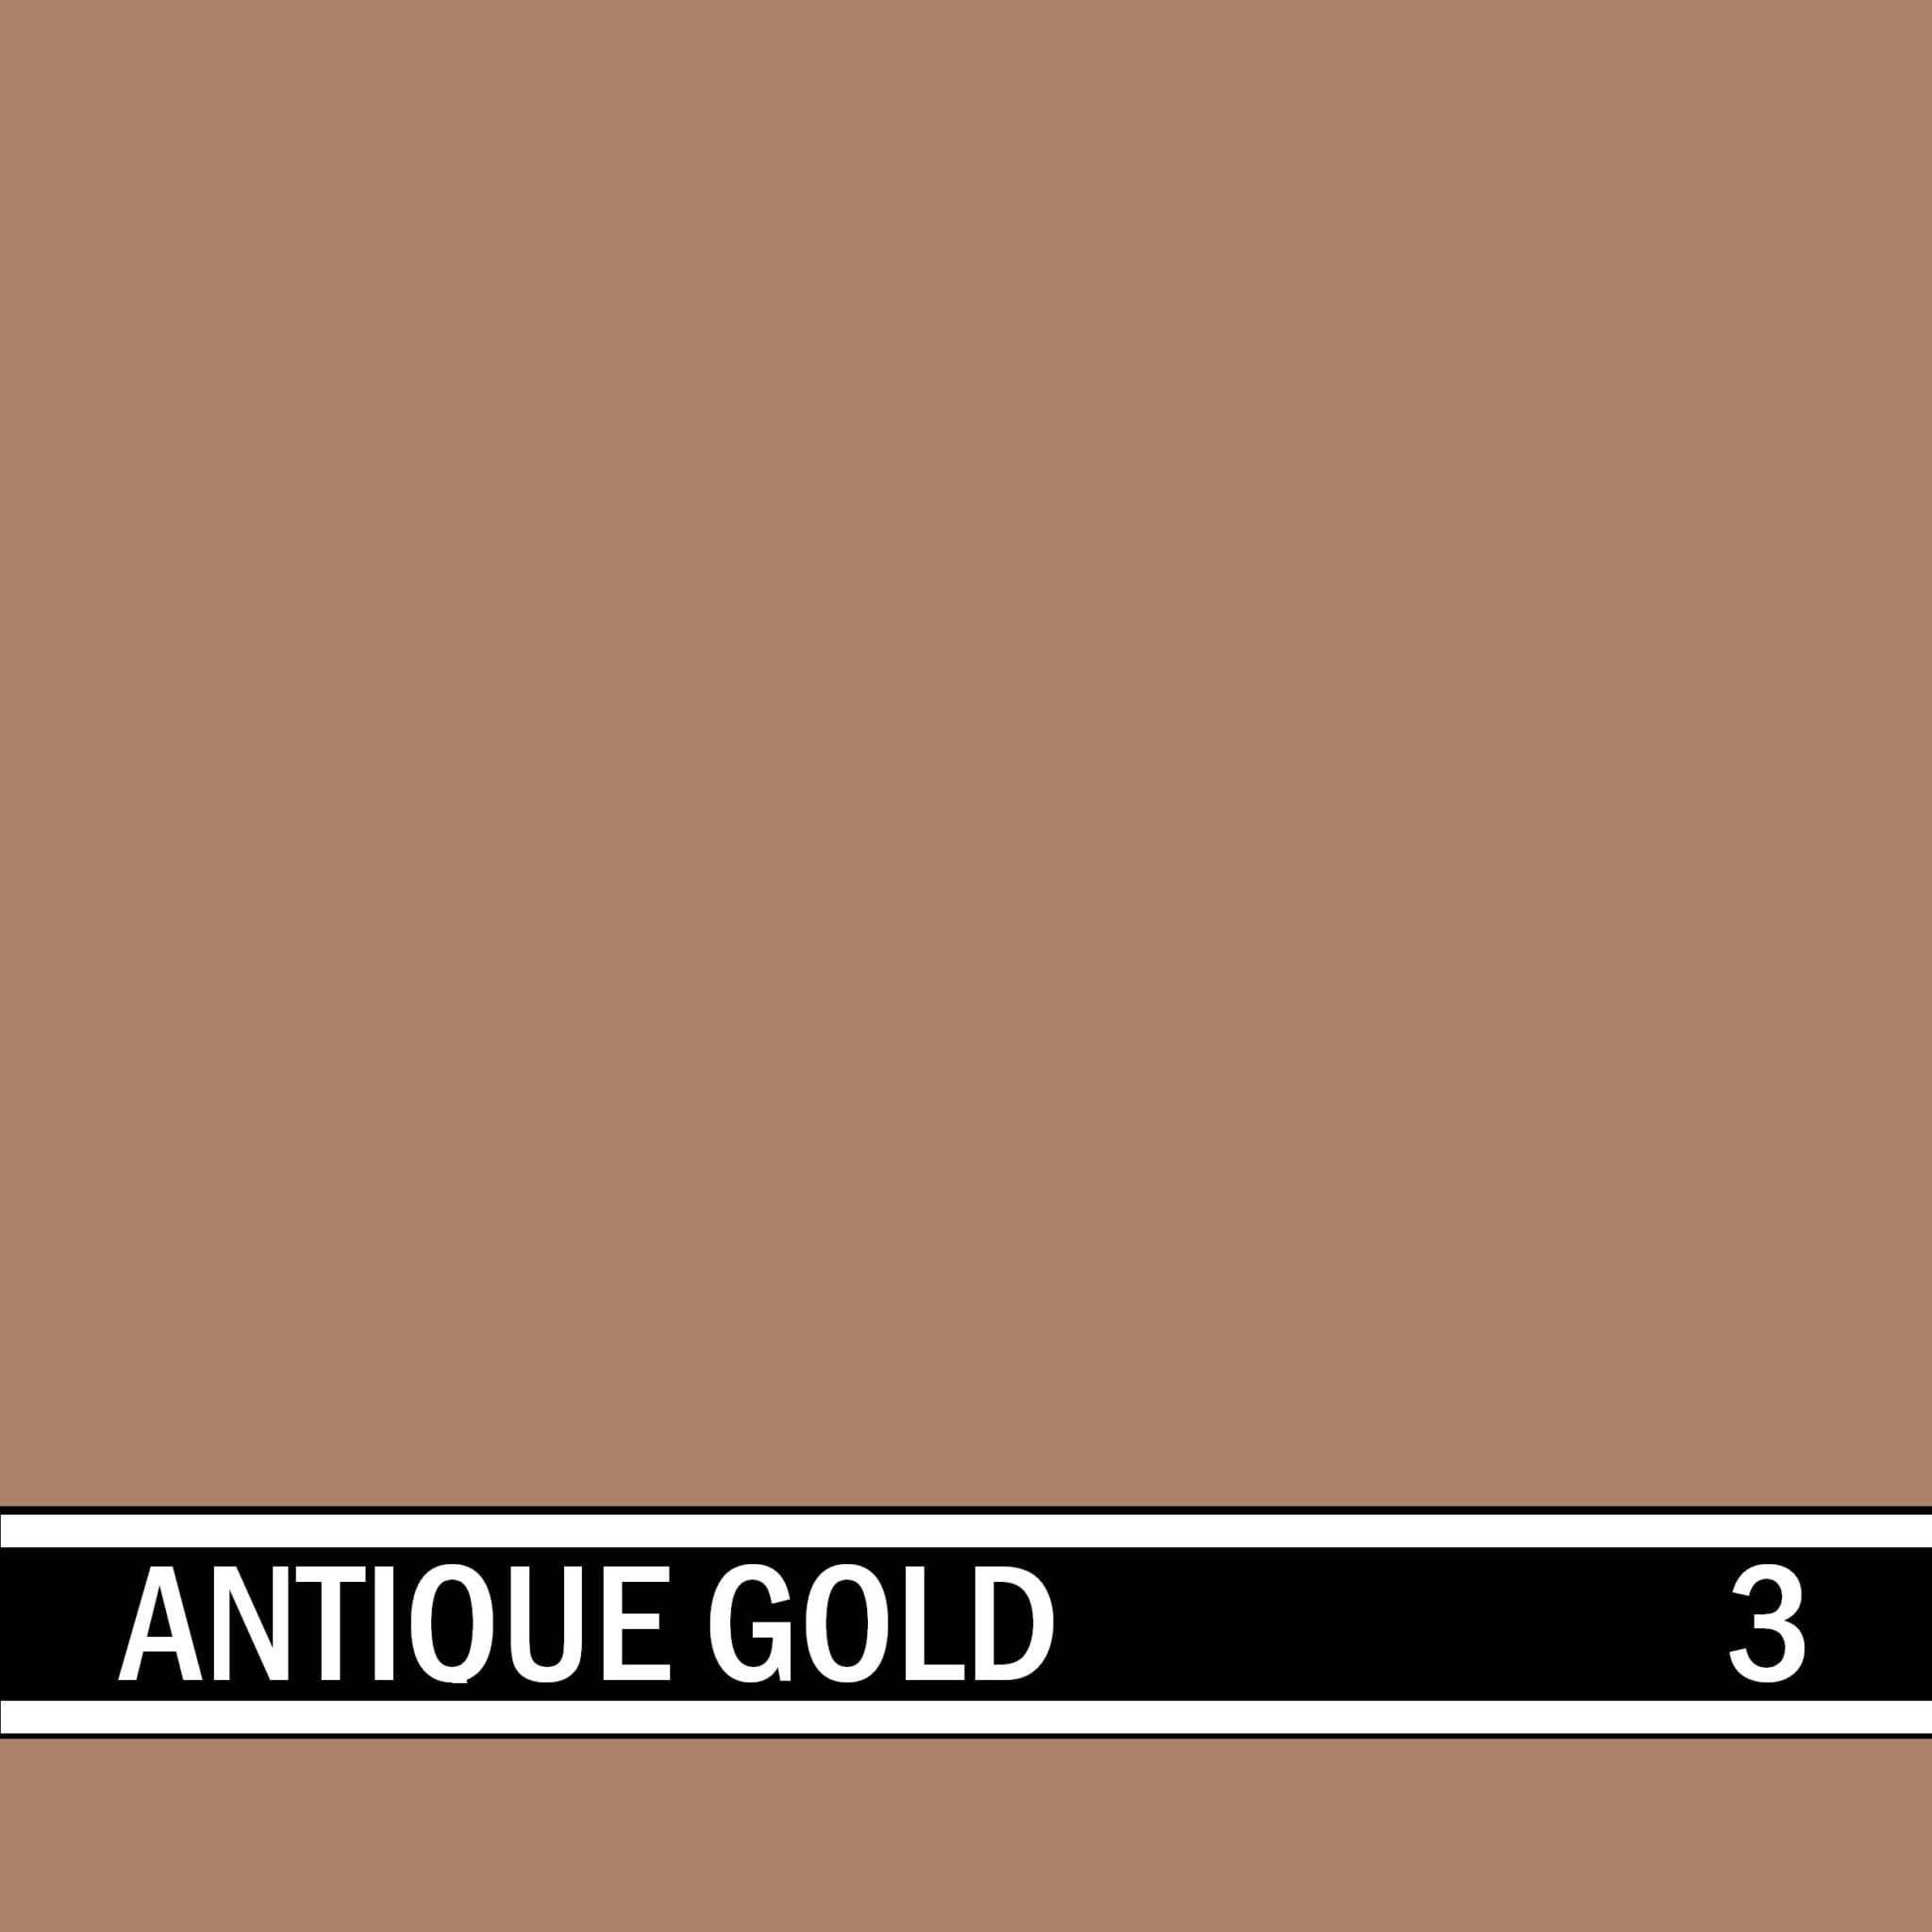 Antique Gold integral concrete color for stamped concrete and decorative colored concrete